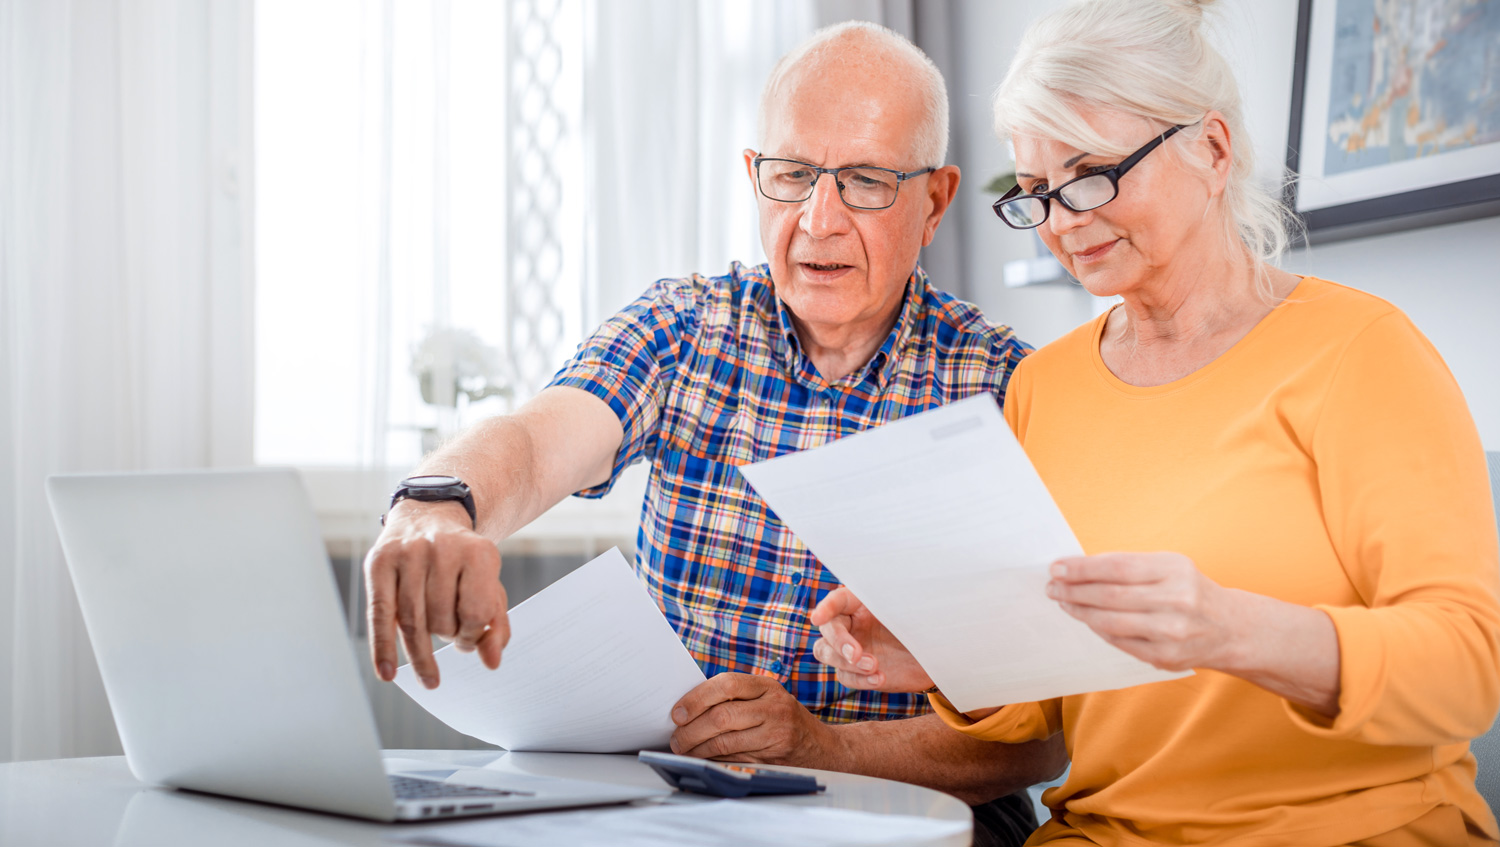 How much equity can I release? Retired couple check finances